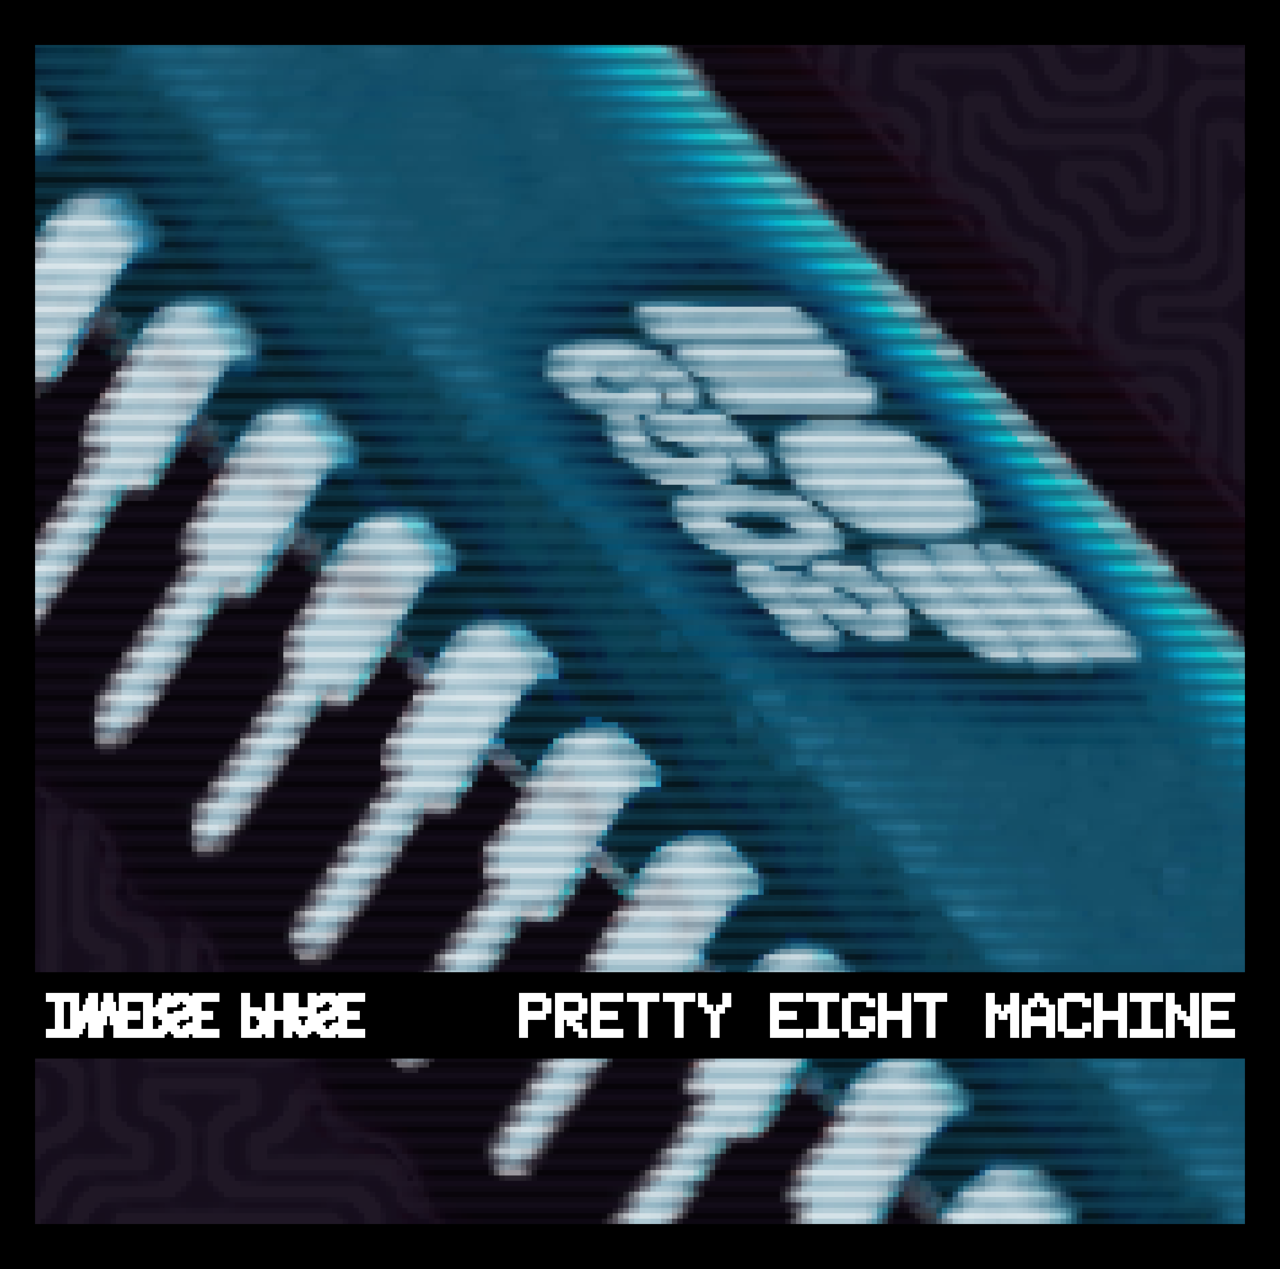 "Pretty Eight Machine by Inverse Phase  Chiptune re-engineered version of Nine Inch Nail's 'Pretty Hate Machine' album.  This is Pretty Hate Machine, re-imagined in its entirety on eight different 8-bit systems, so I've named it ""Pretty Eight Machine"". Sound configurations include: SID/6581 (Commodore 64), POKEY (Atari 800), straight 2A03 (NES), AY/SCC+ (MSX+Metal Gear 2 or Snatcher cartridge), SN76489 (Sega Master System), 2A03+VRC6 (Famicom+Castlevania 3 cartridge), LR35902 (Game Boy), and OPLL (MSX-MUSIC or Japanese Sega Master System).  You can listen to the album in the embed below, or check out the Bandcamp page with more information here <a href=""http://inversephase.bandcamp.com/album/pretty-eight-machine"" data-mce-href=""http://inversephase.bandcamp.com/album/pretty-eight-machine"">Pretty Eight Machine by Inverse Phase</a>"